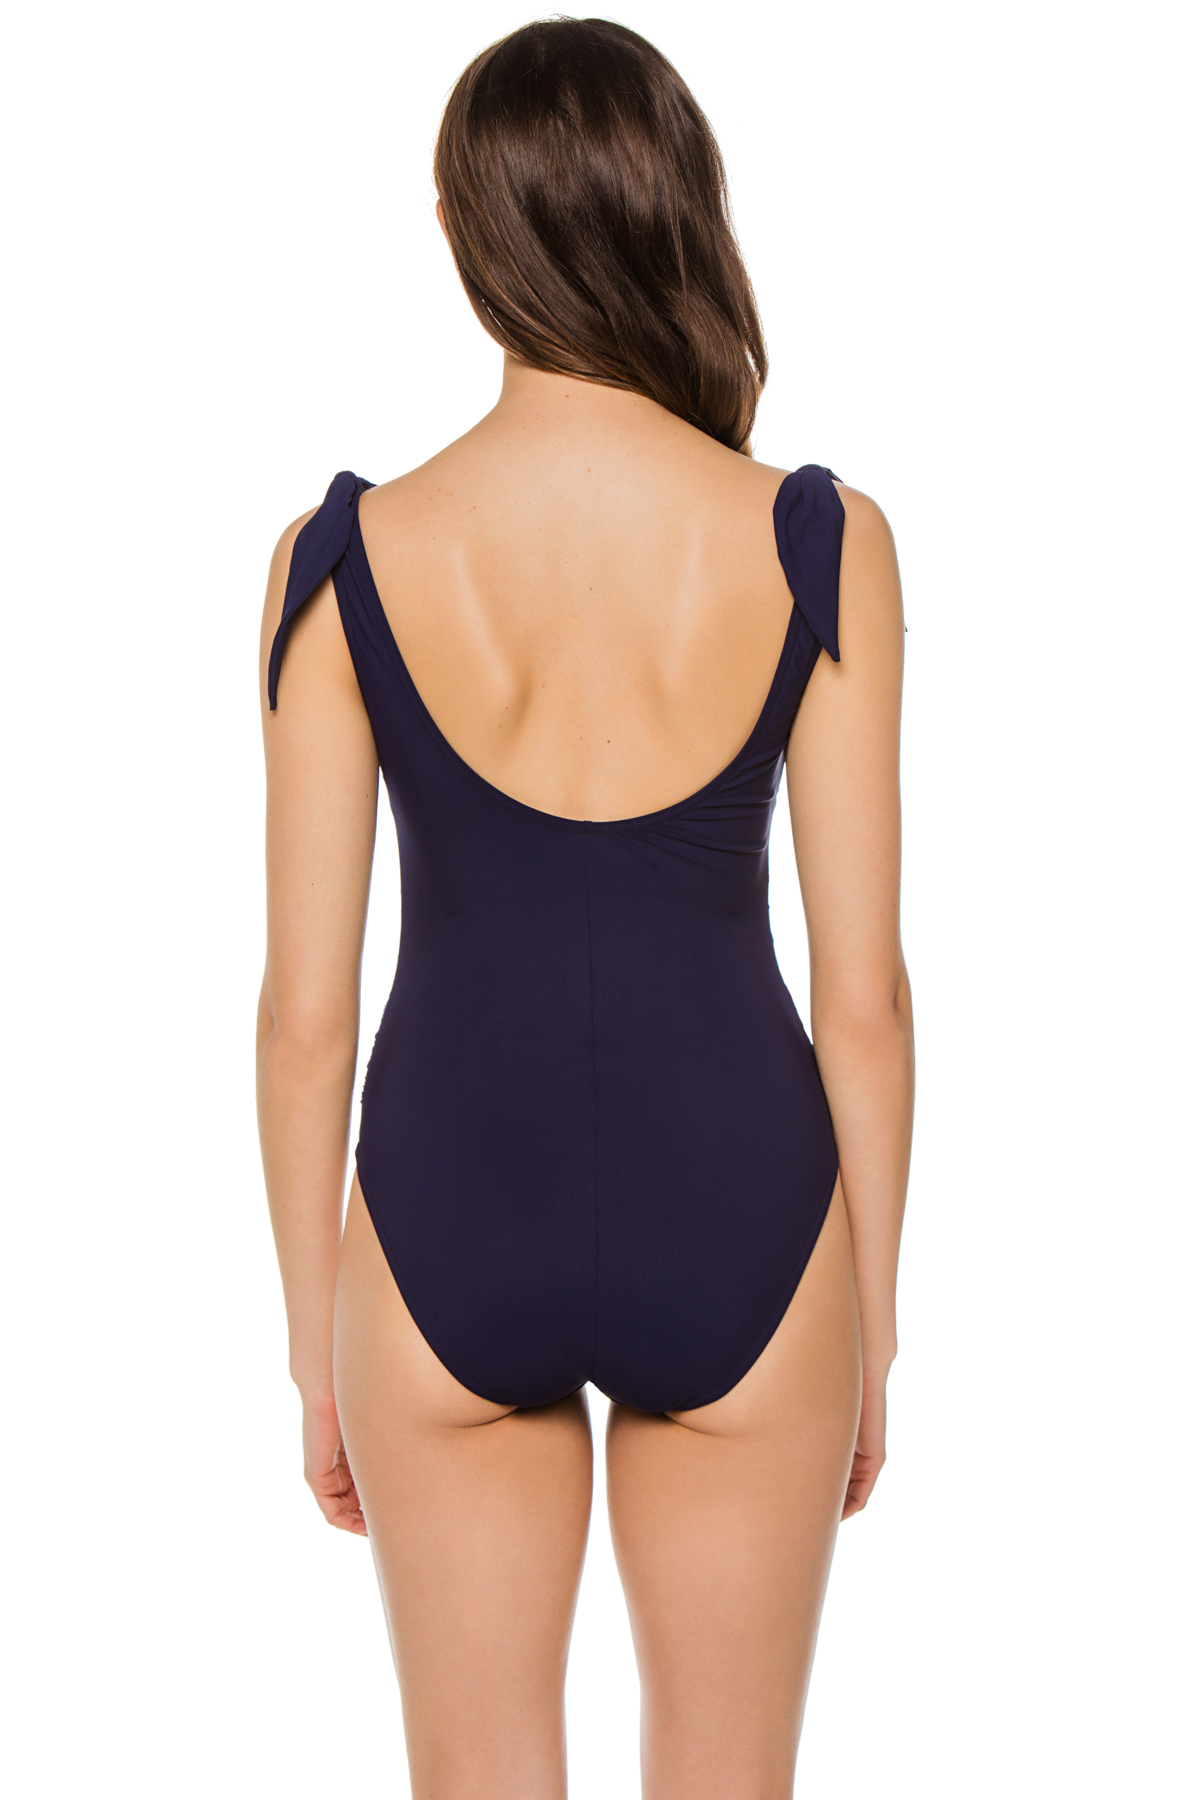 Knot Tie Over The Shoulder One Piece Swimsuit - Navy 2